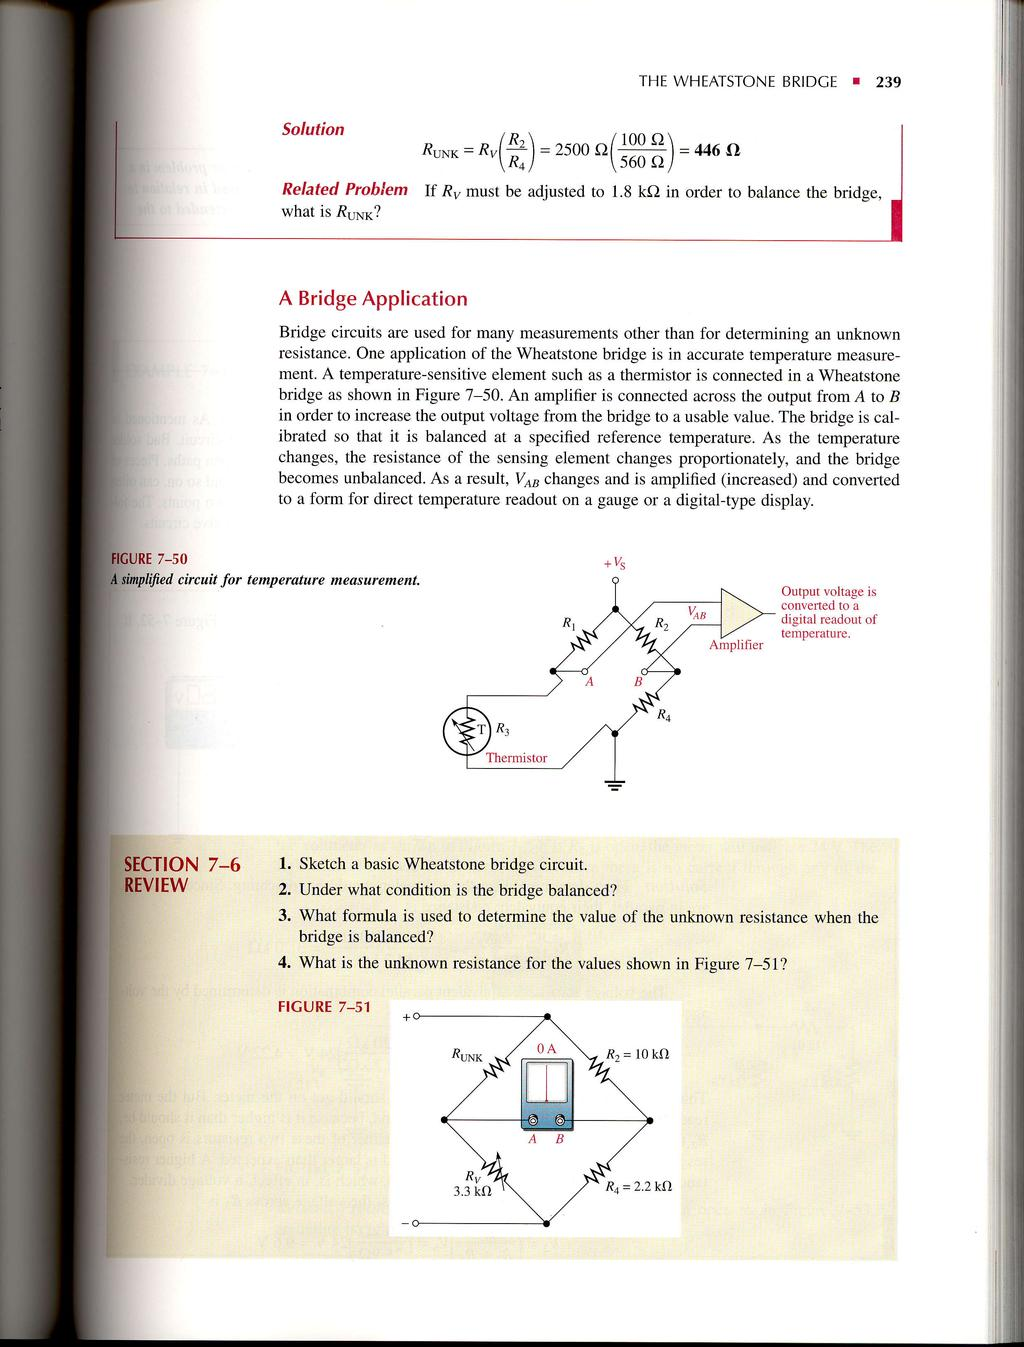 Seriesparallel Circuits Pdf Solving Problems In Series Parallel Requires The Wheatstone Bridce I 239 Solution Runr Fr 2soo